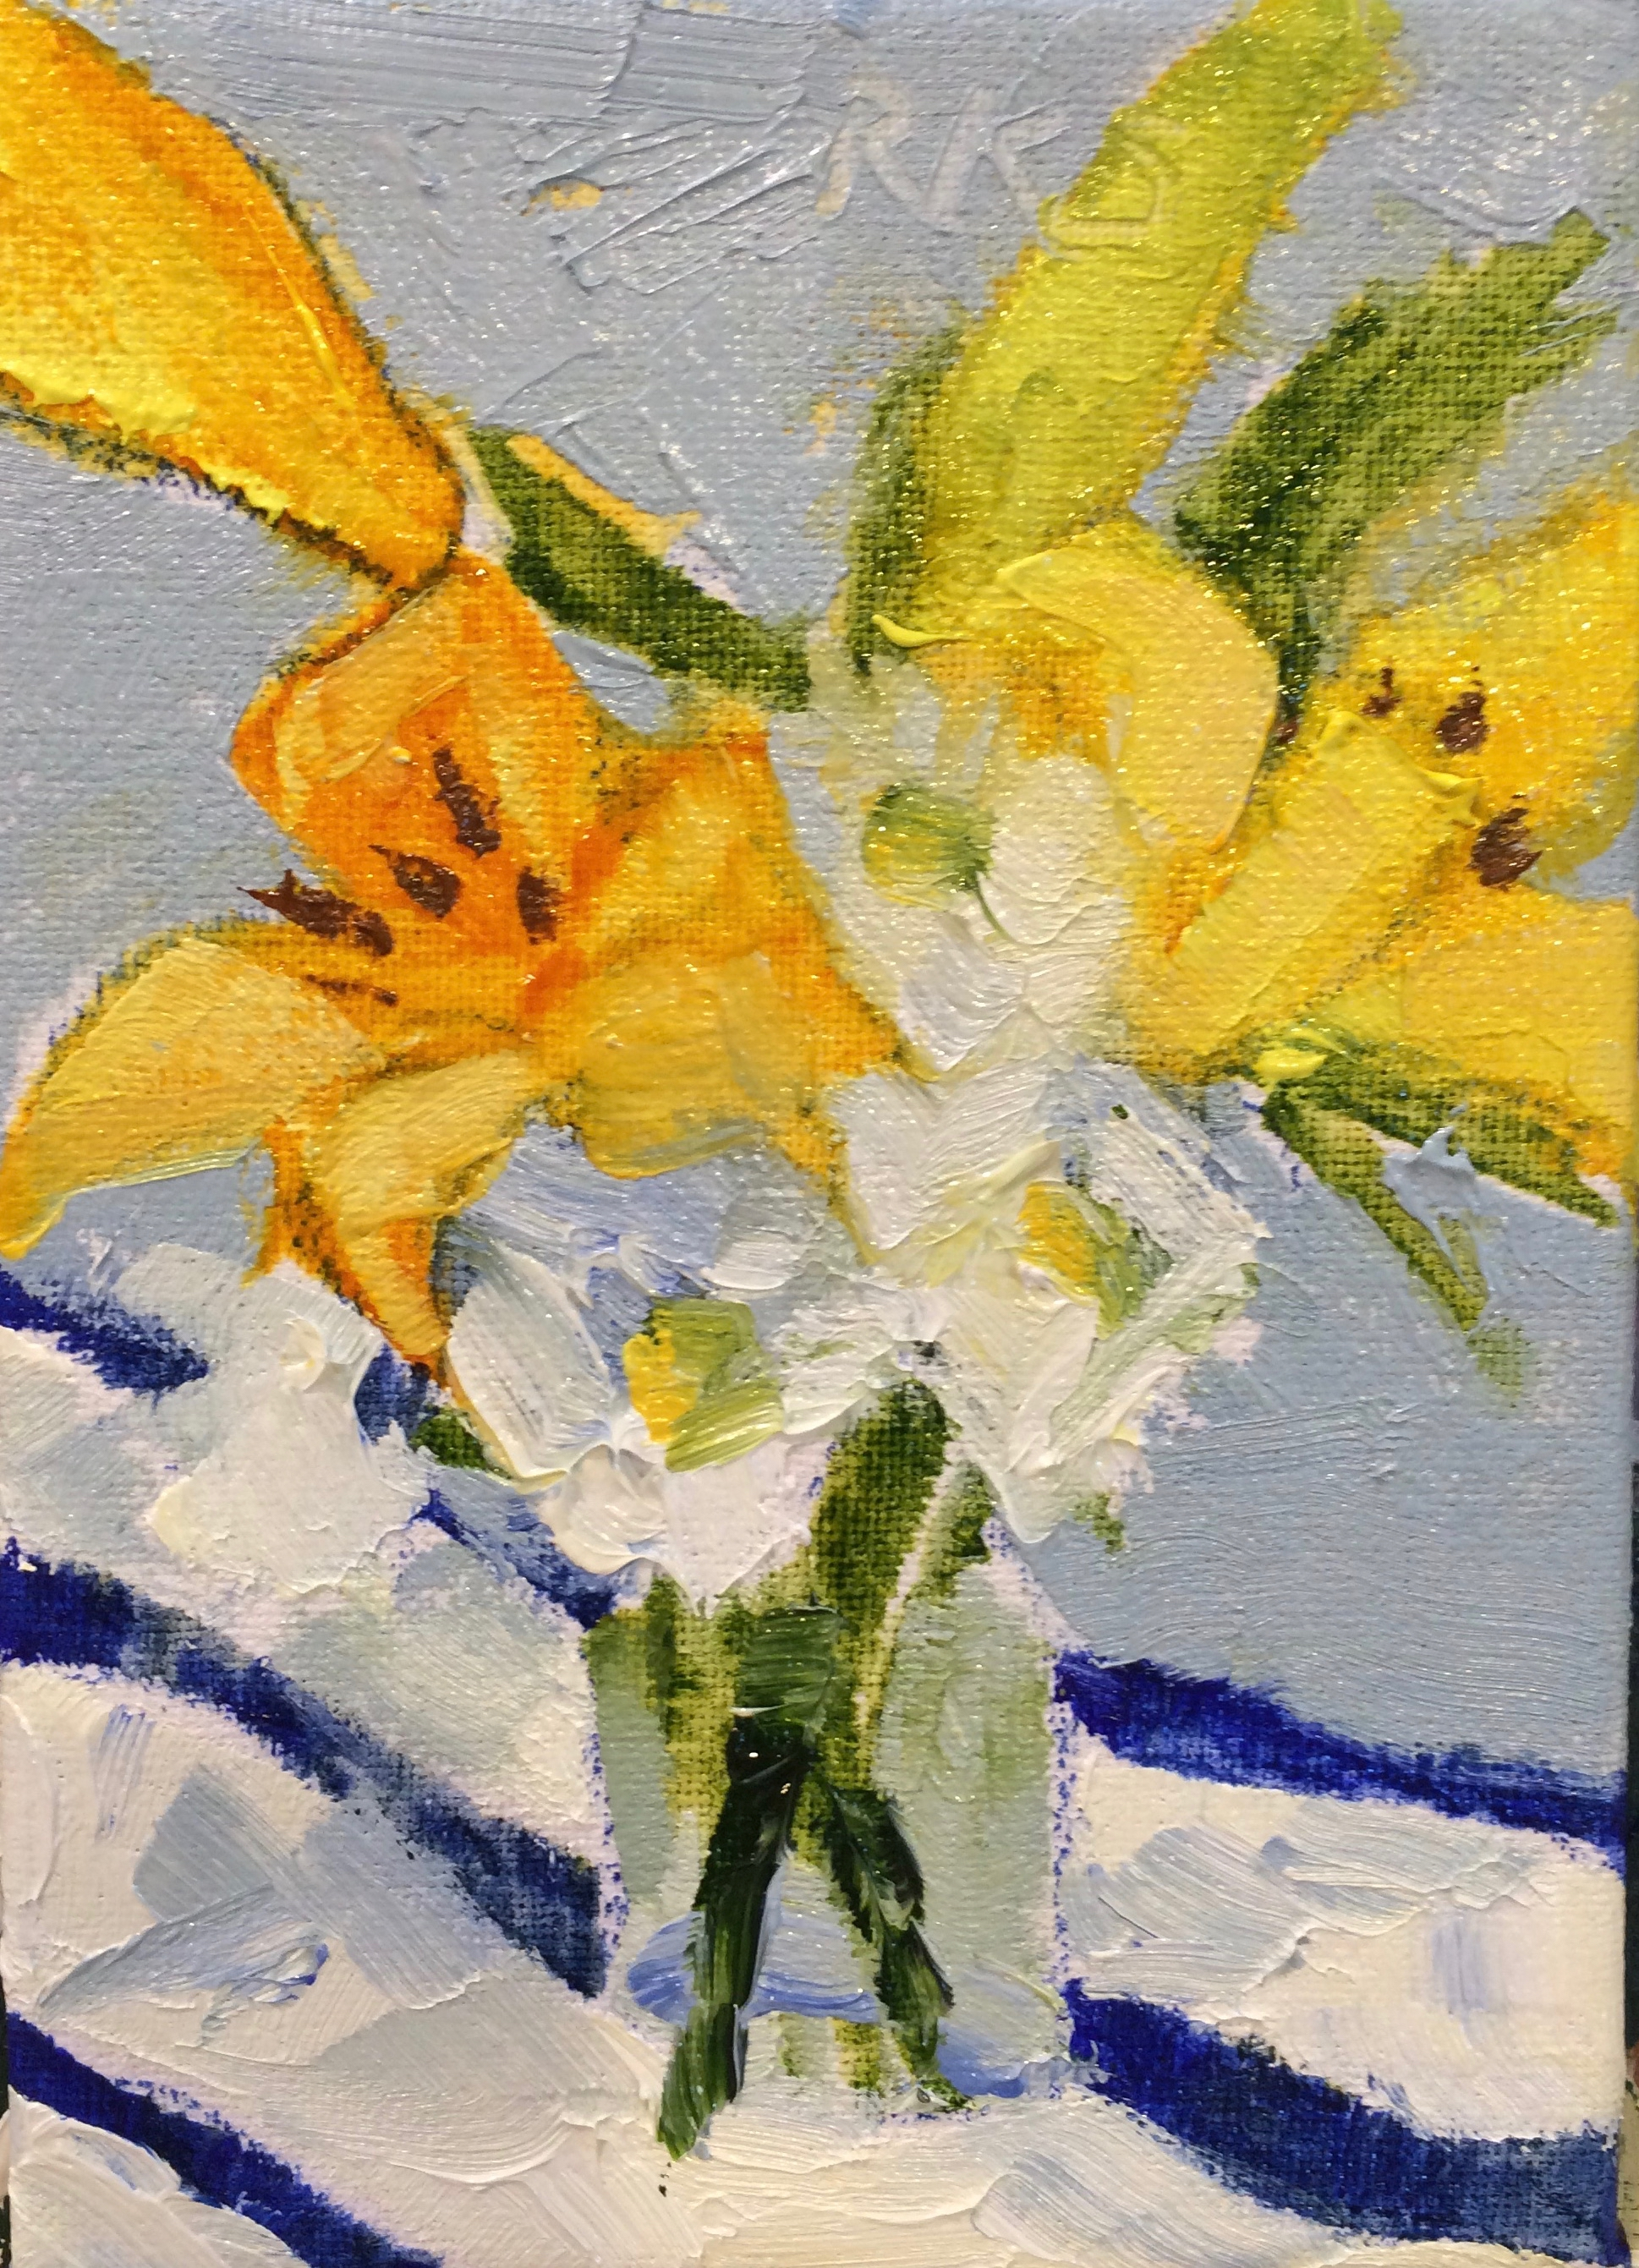 Lilies and Daisies, ACEO.jpg